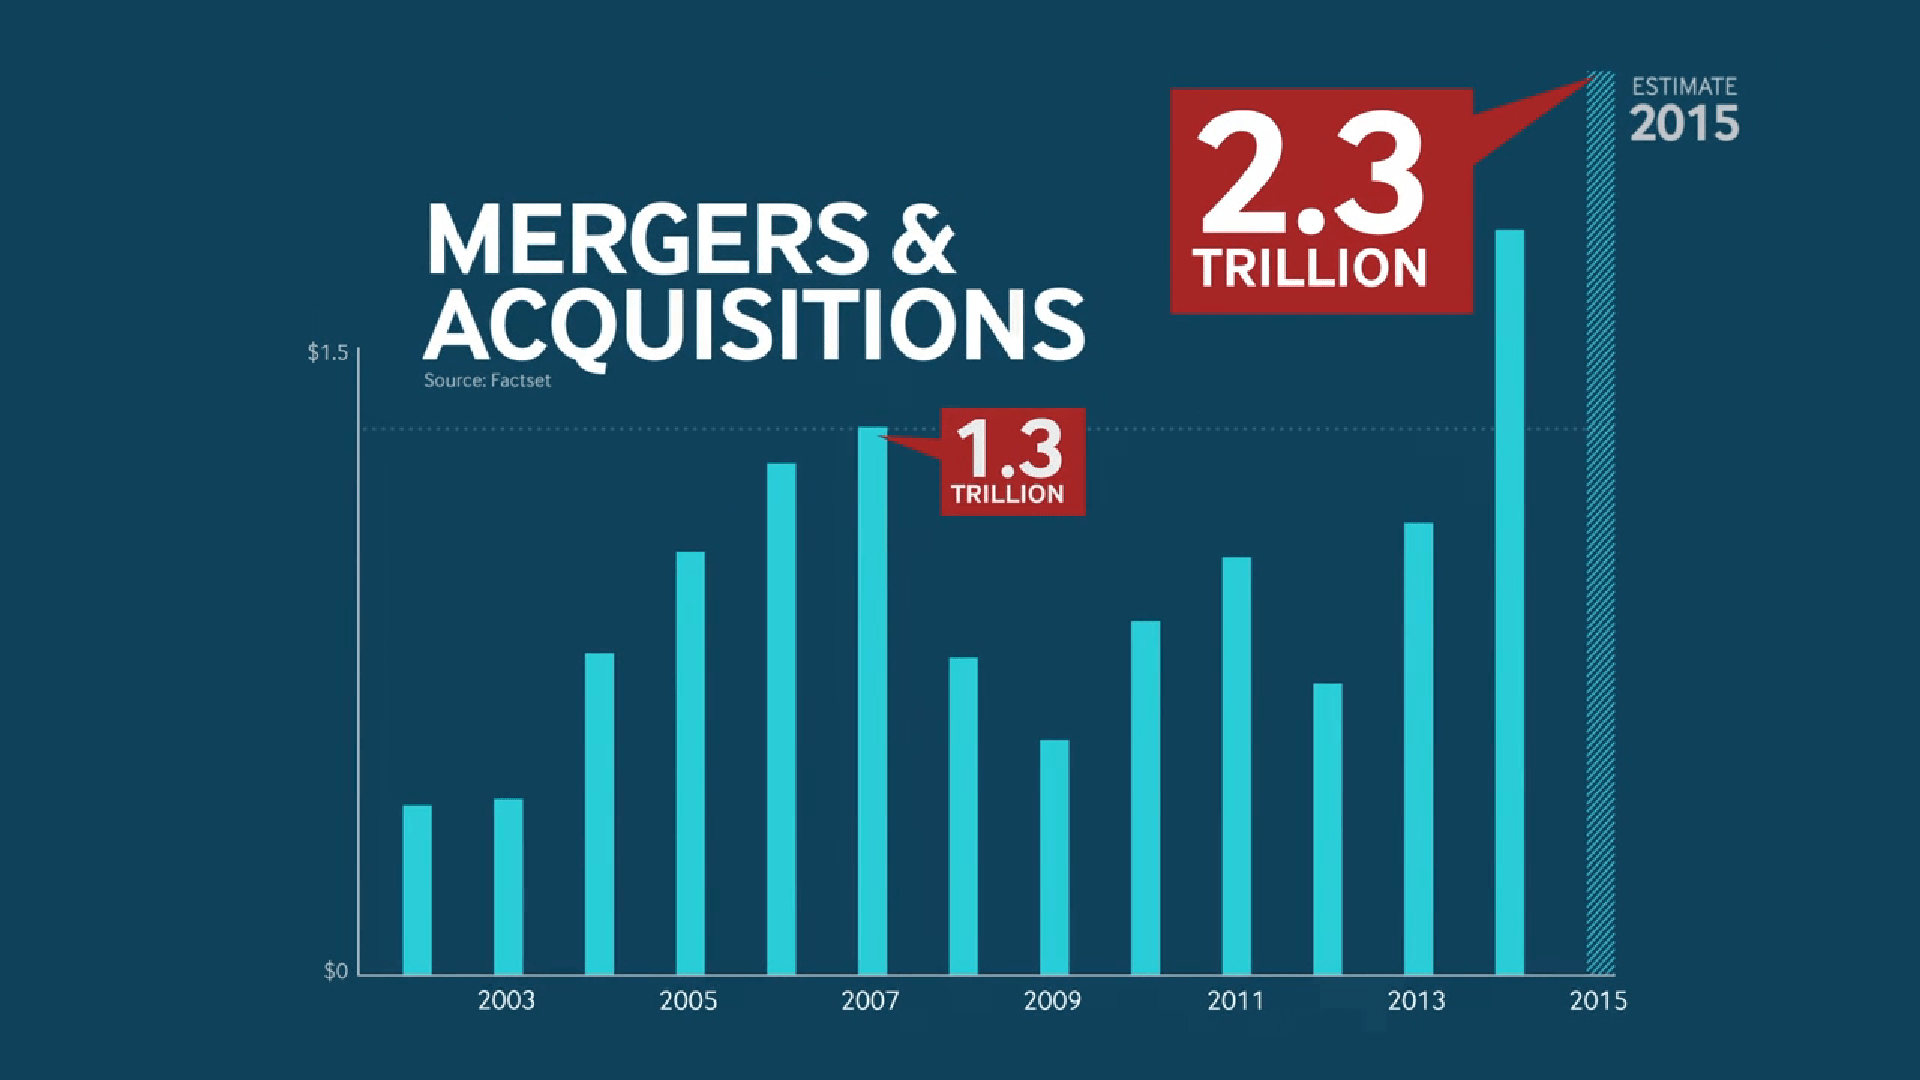 All of this money in the risky high-yield-bond market has helped fuel a boom in mergers and acquisitions.